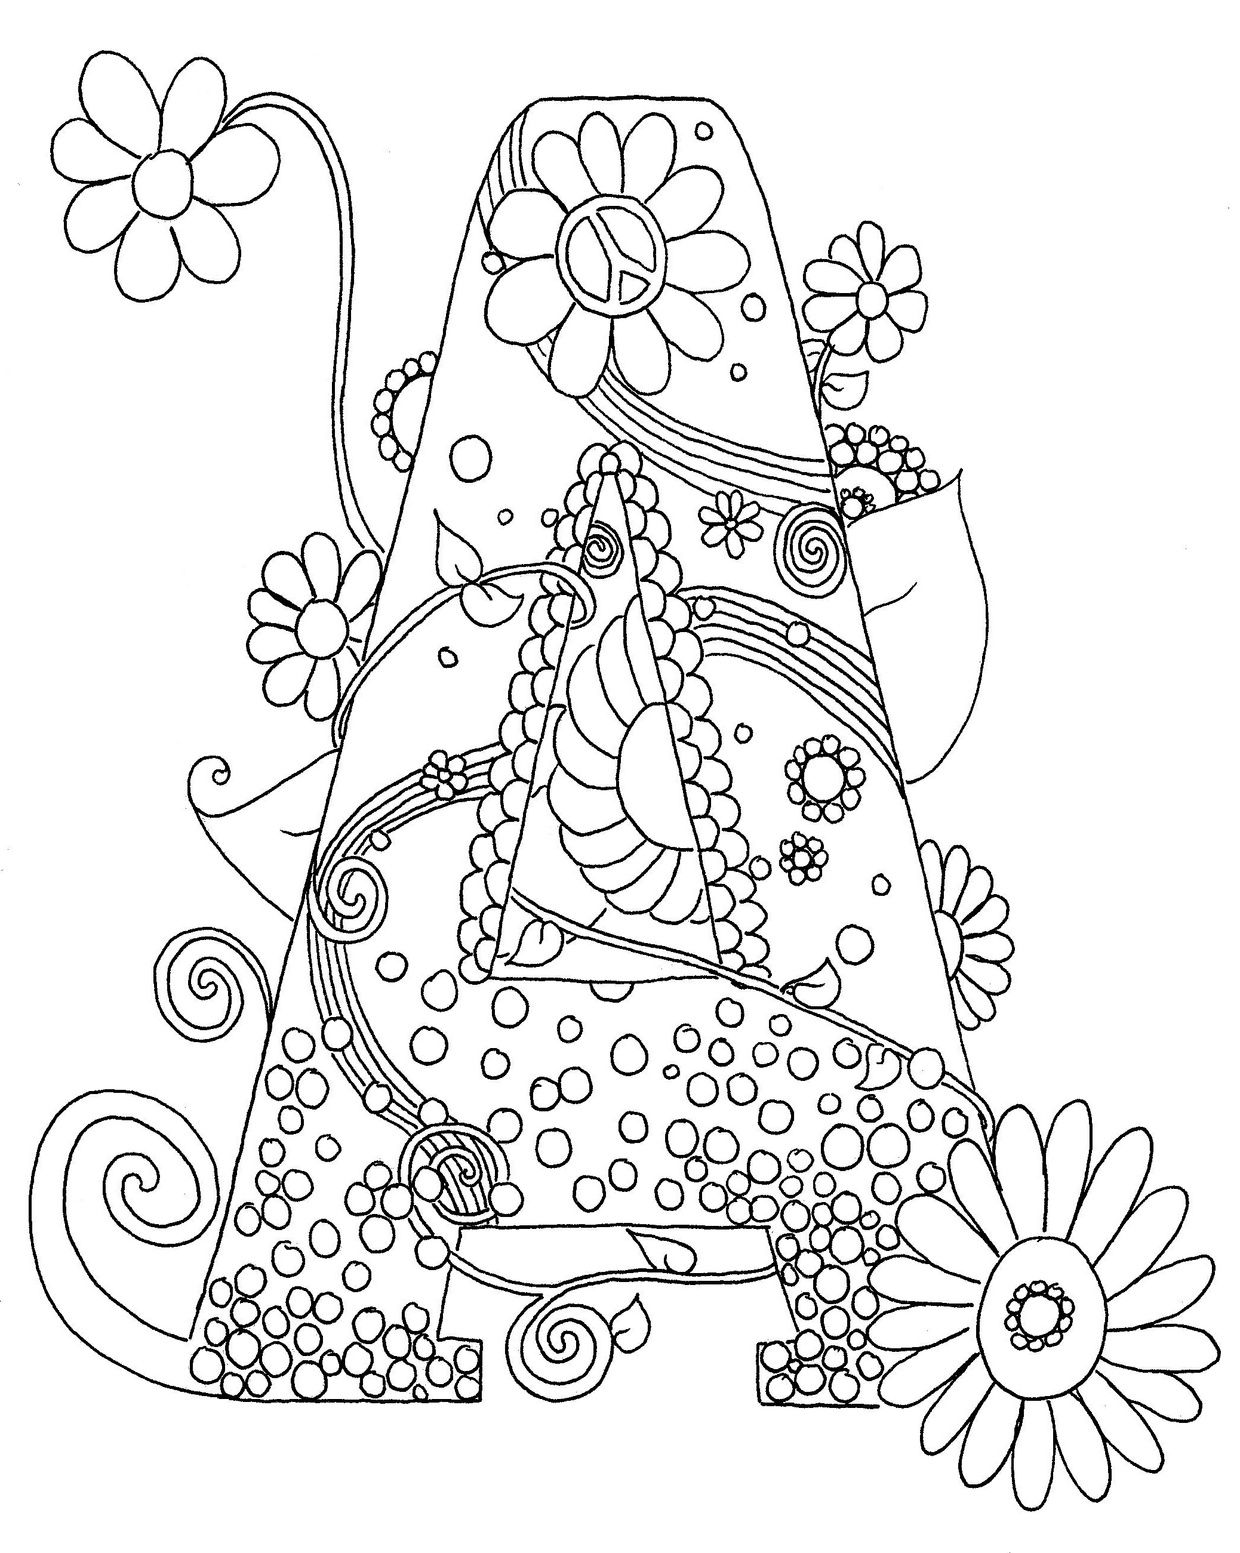 Letter A Hippy Initial Coloring Page Letter A Coloring Pages Abc Coloring Pages Coloring Letters